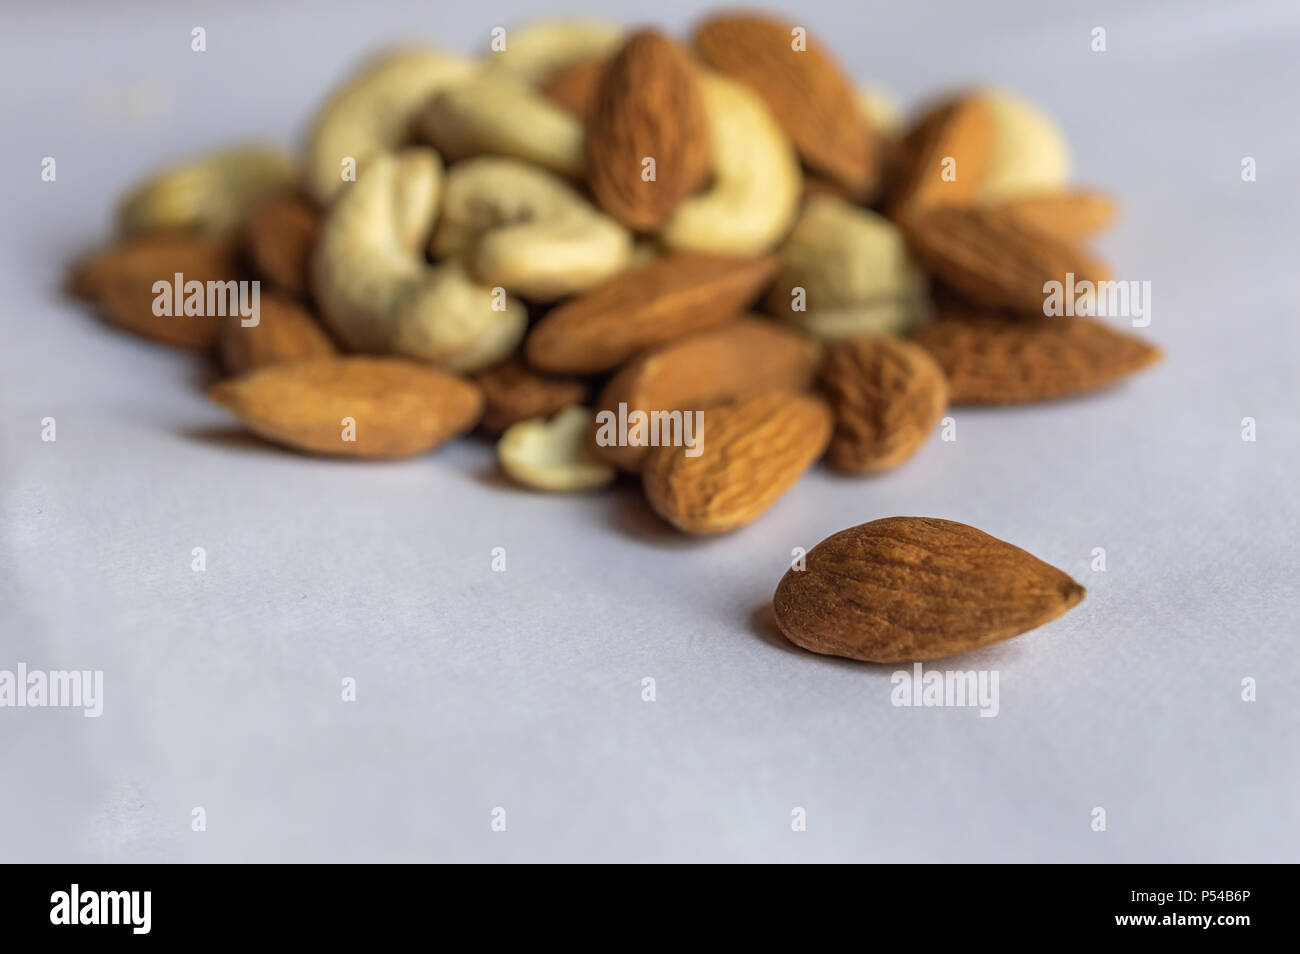 An almond isolated from a heap of other nuts like almonds and cashew - Stock Image